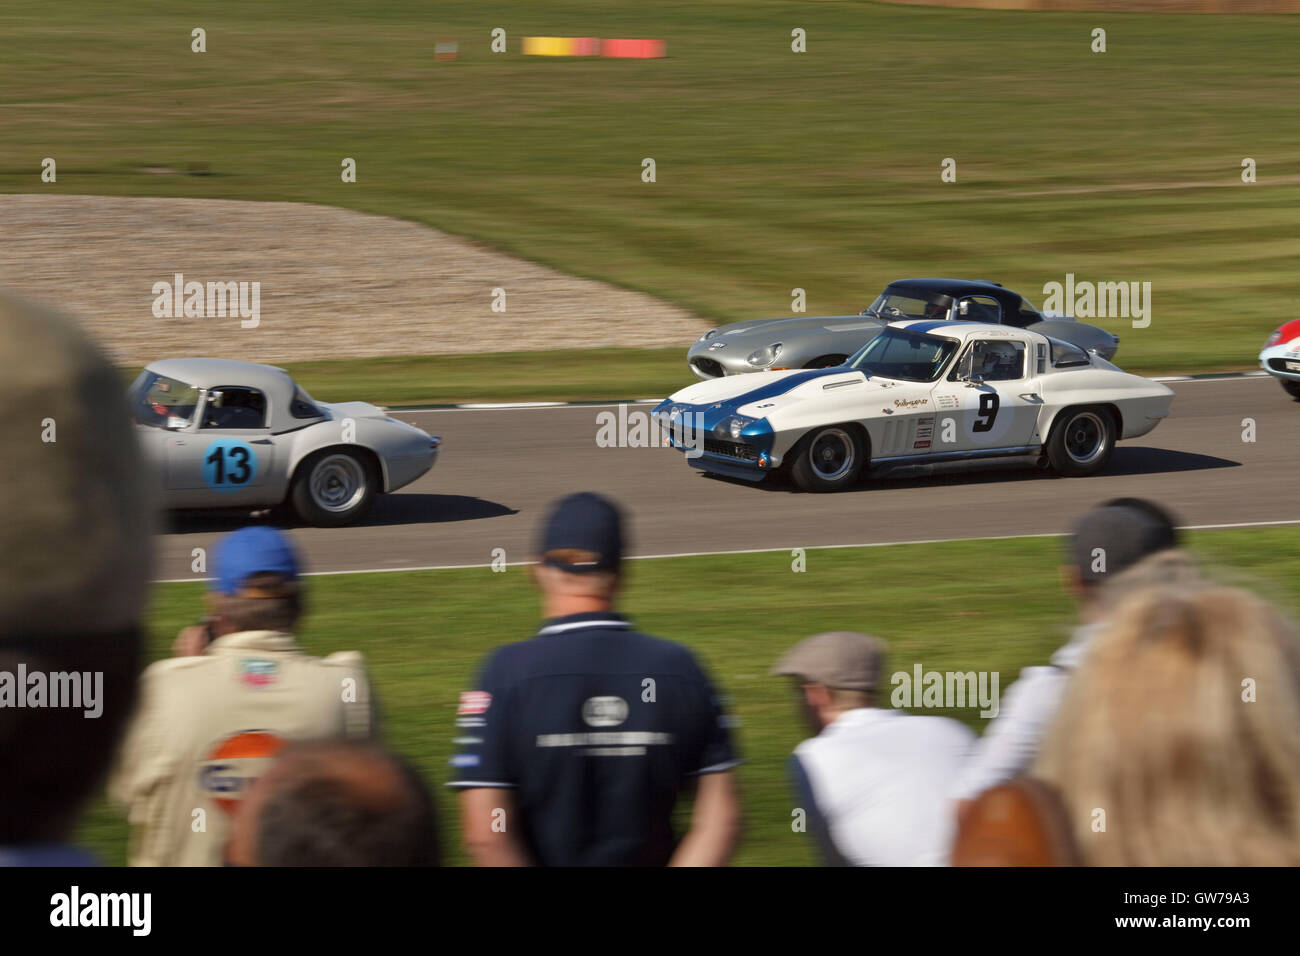 Chichester, UK, UK. 11th Sep, 2016. The RAC TT Celebration race for 1960's sports cars during the Goodwood Revival - Stock Image